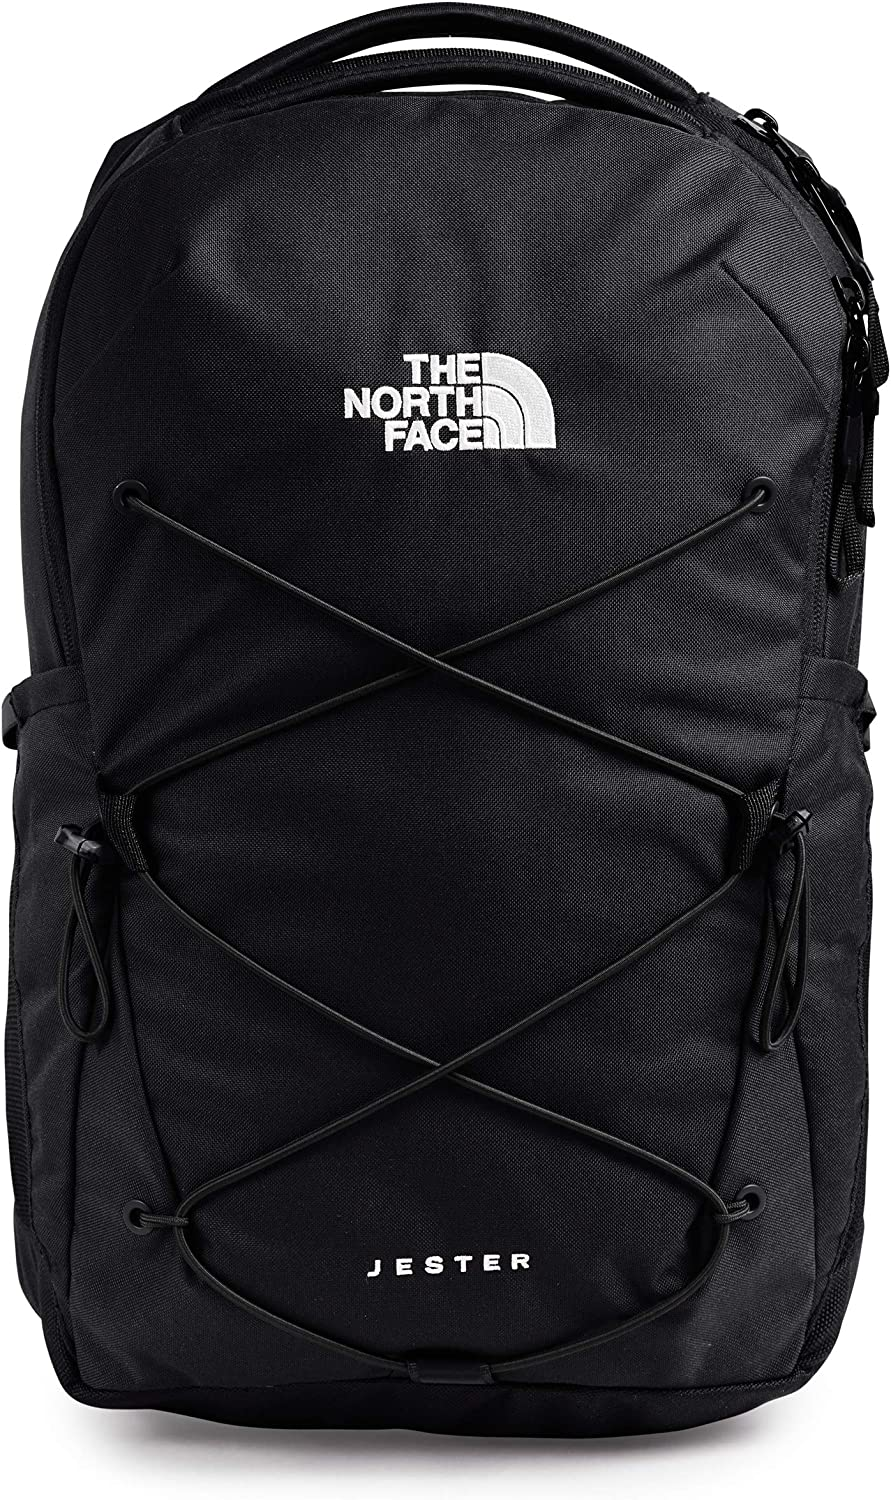 The North Face Cheap sale Women's Laptop School Backpack Super Special SALE held Jester